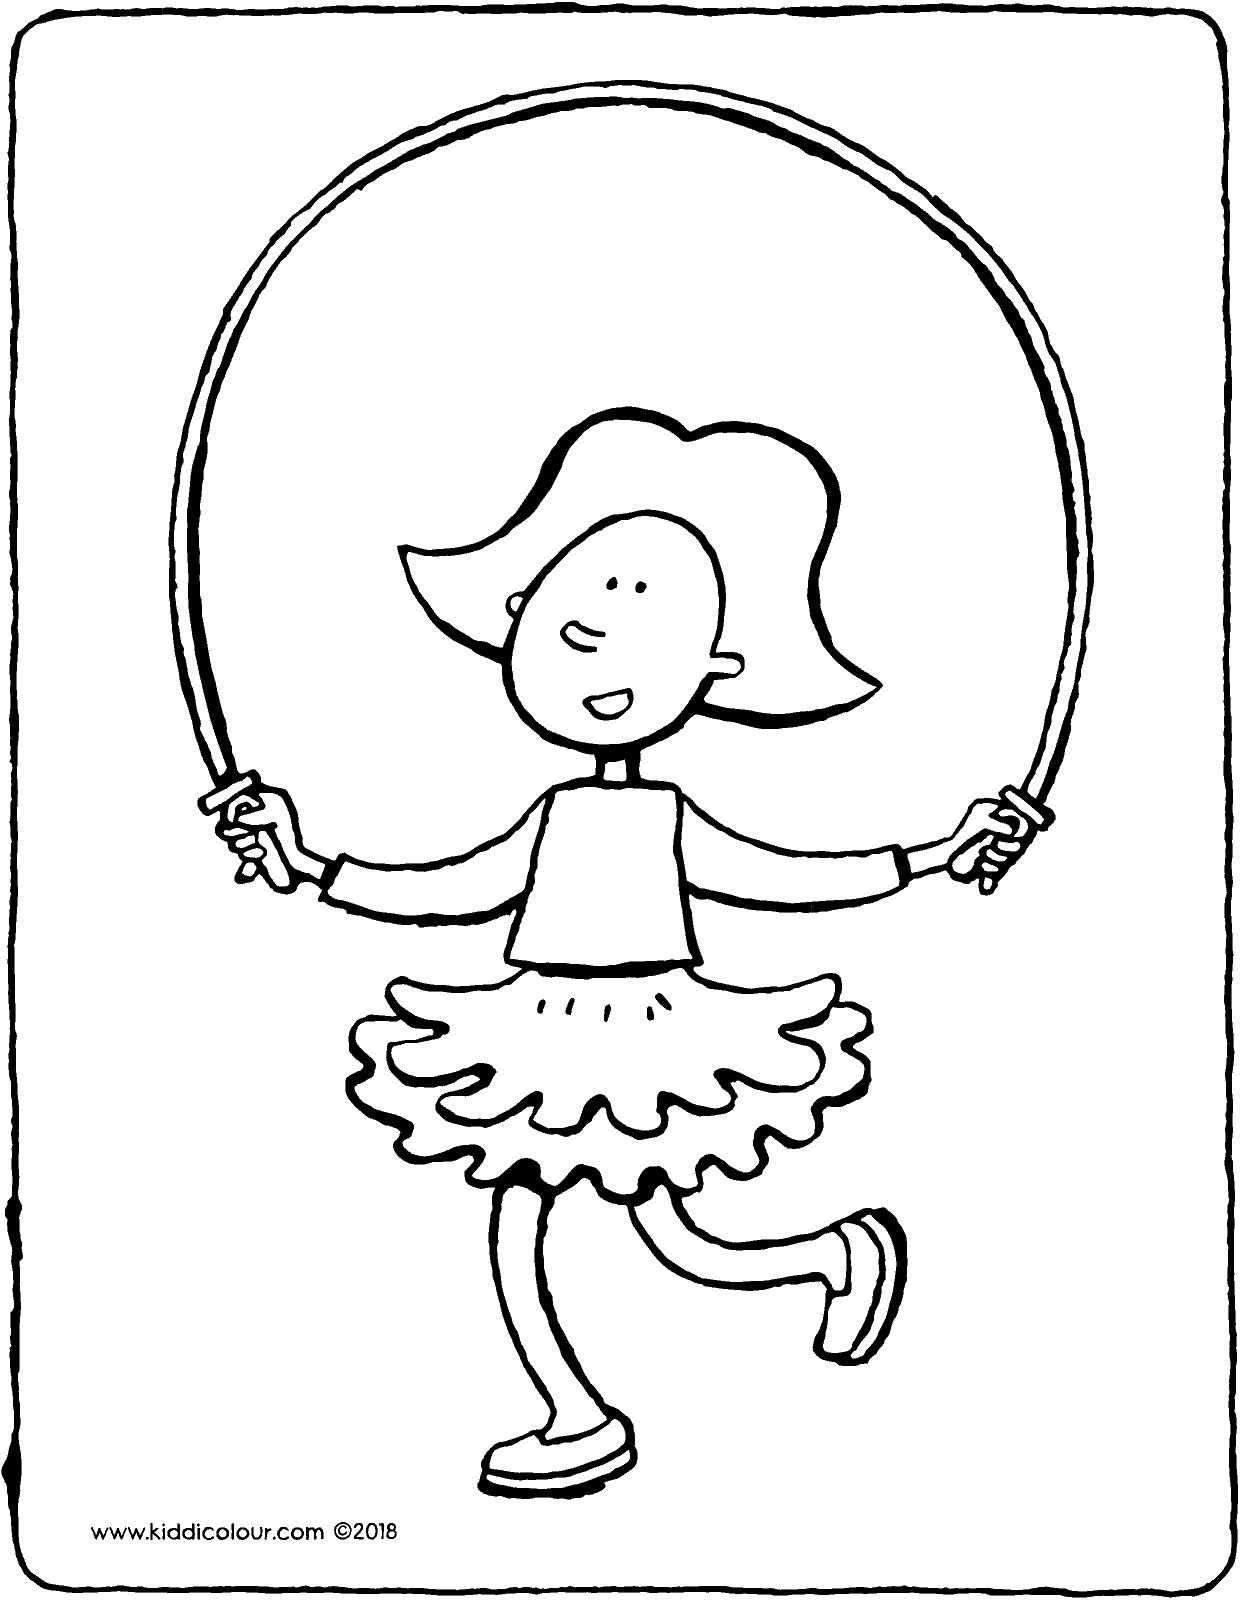 skipping with Emma colouring page drawing picture 01V